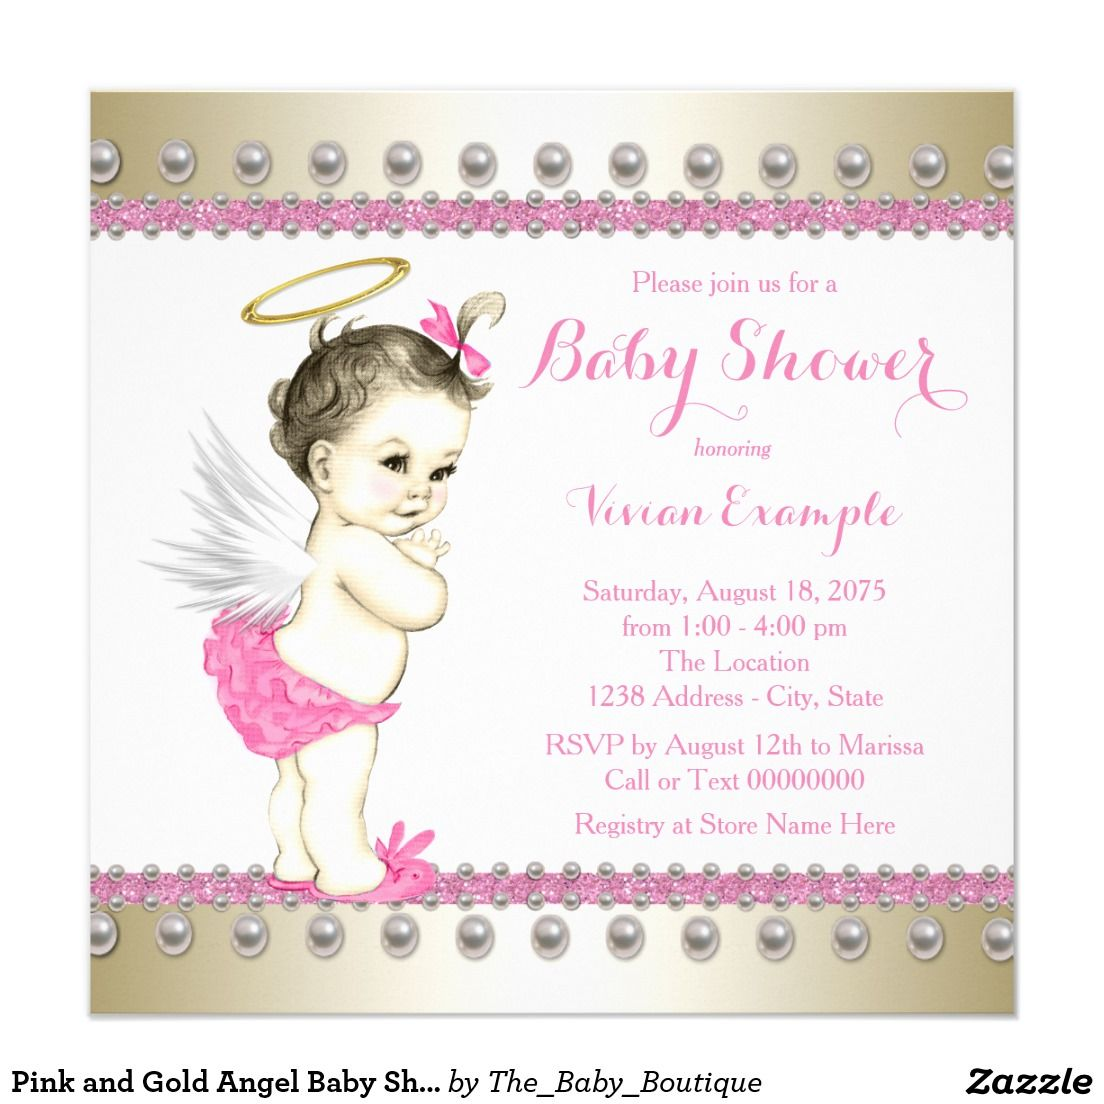 Pink and Gold Angel Baby Shower Invitation | Pinterest | Angel baby ...